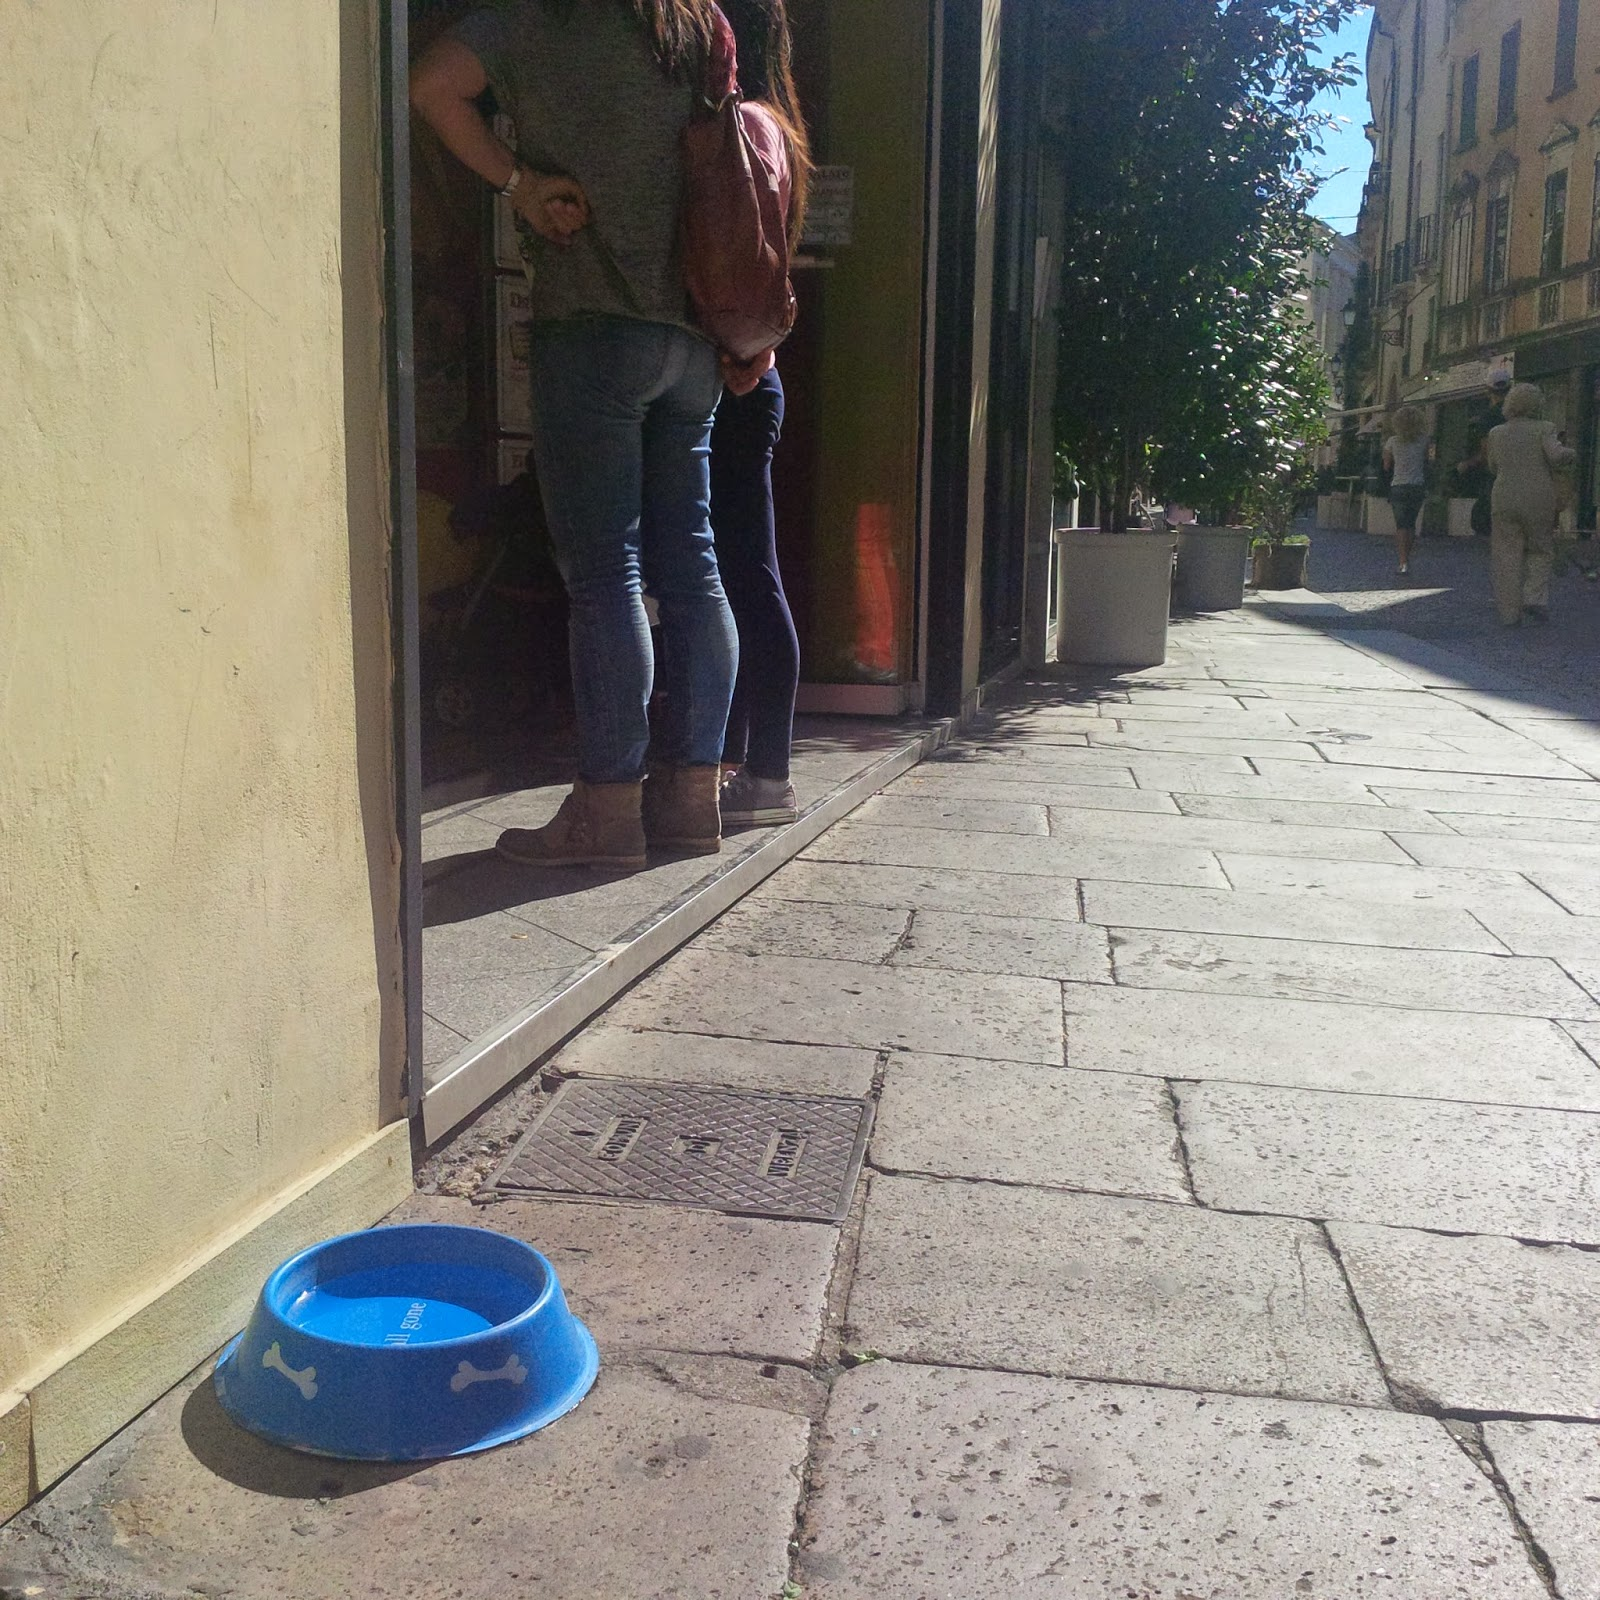 A water bowl is left outside a shop in Vicenza for passing dogs